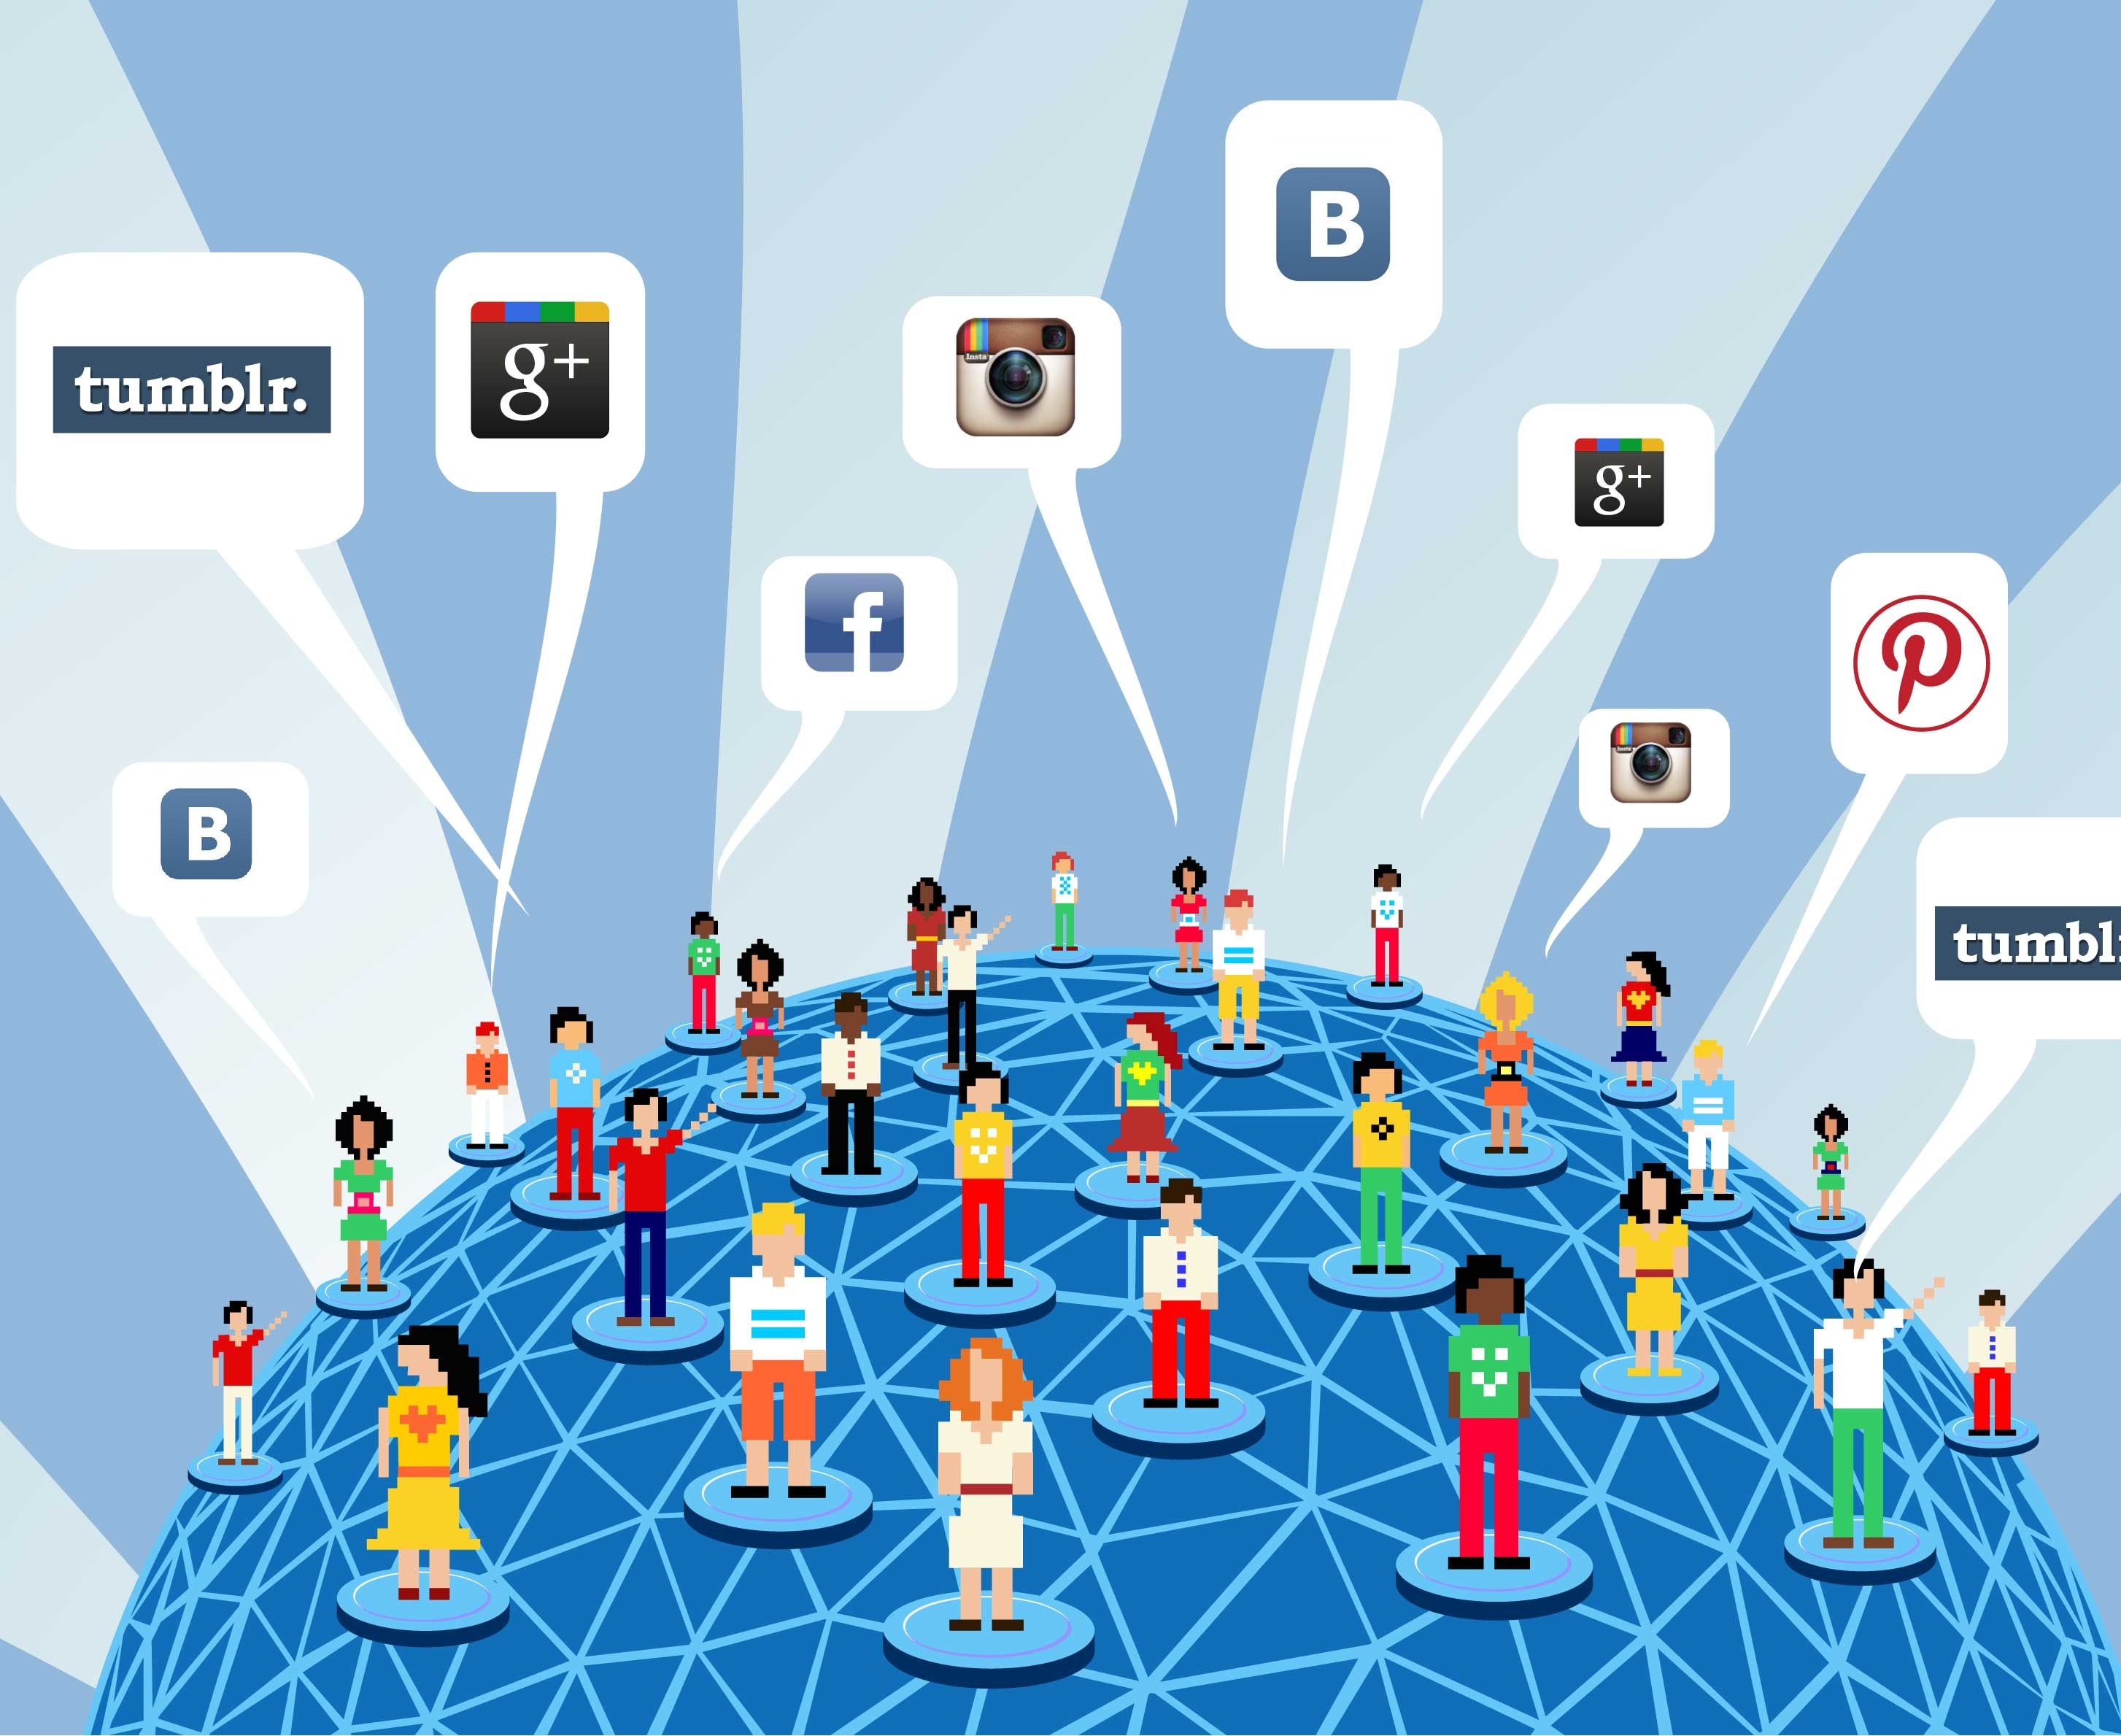 facebook online social networking An overview of the benefits and drawbacks of online social media services such as facebook, linkedin and twitter.